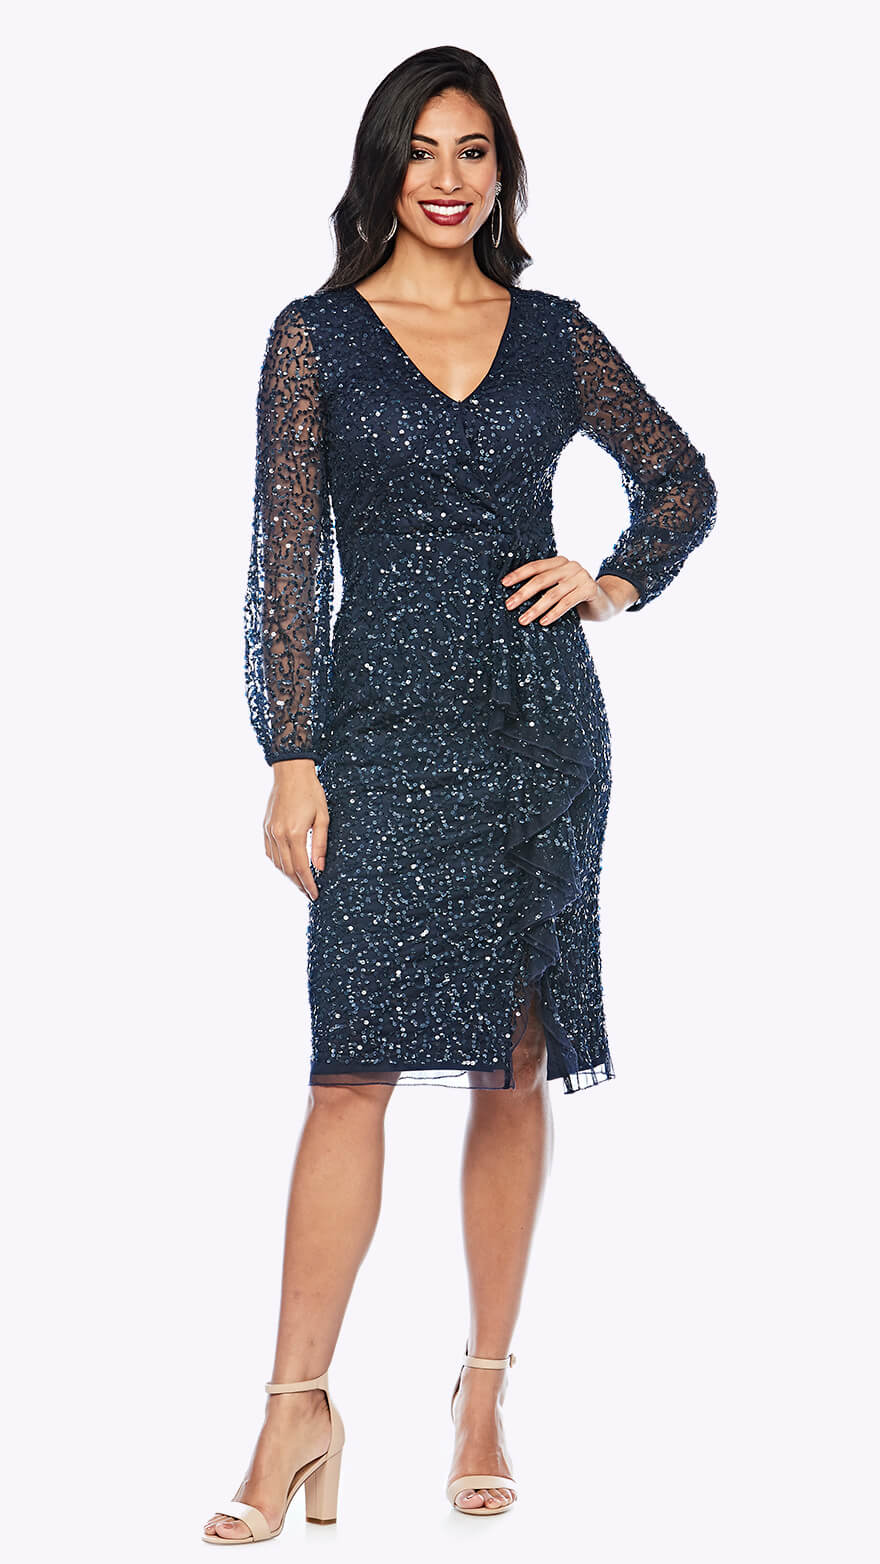 Z0199 Beaded peasant sleeve cocktail dress with V neckline and waterfall style wrap skirt